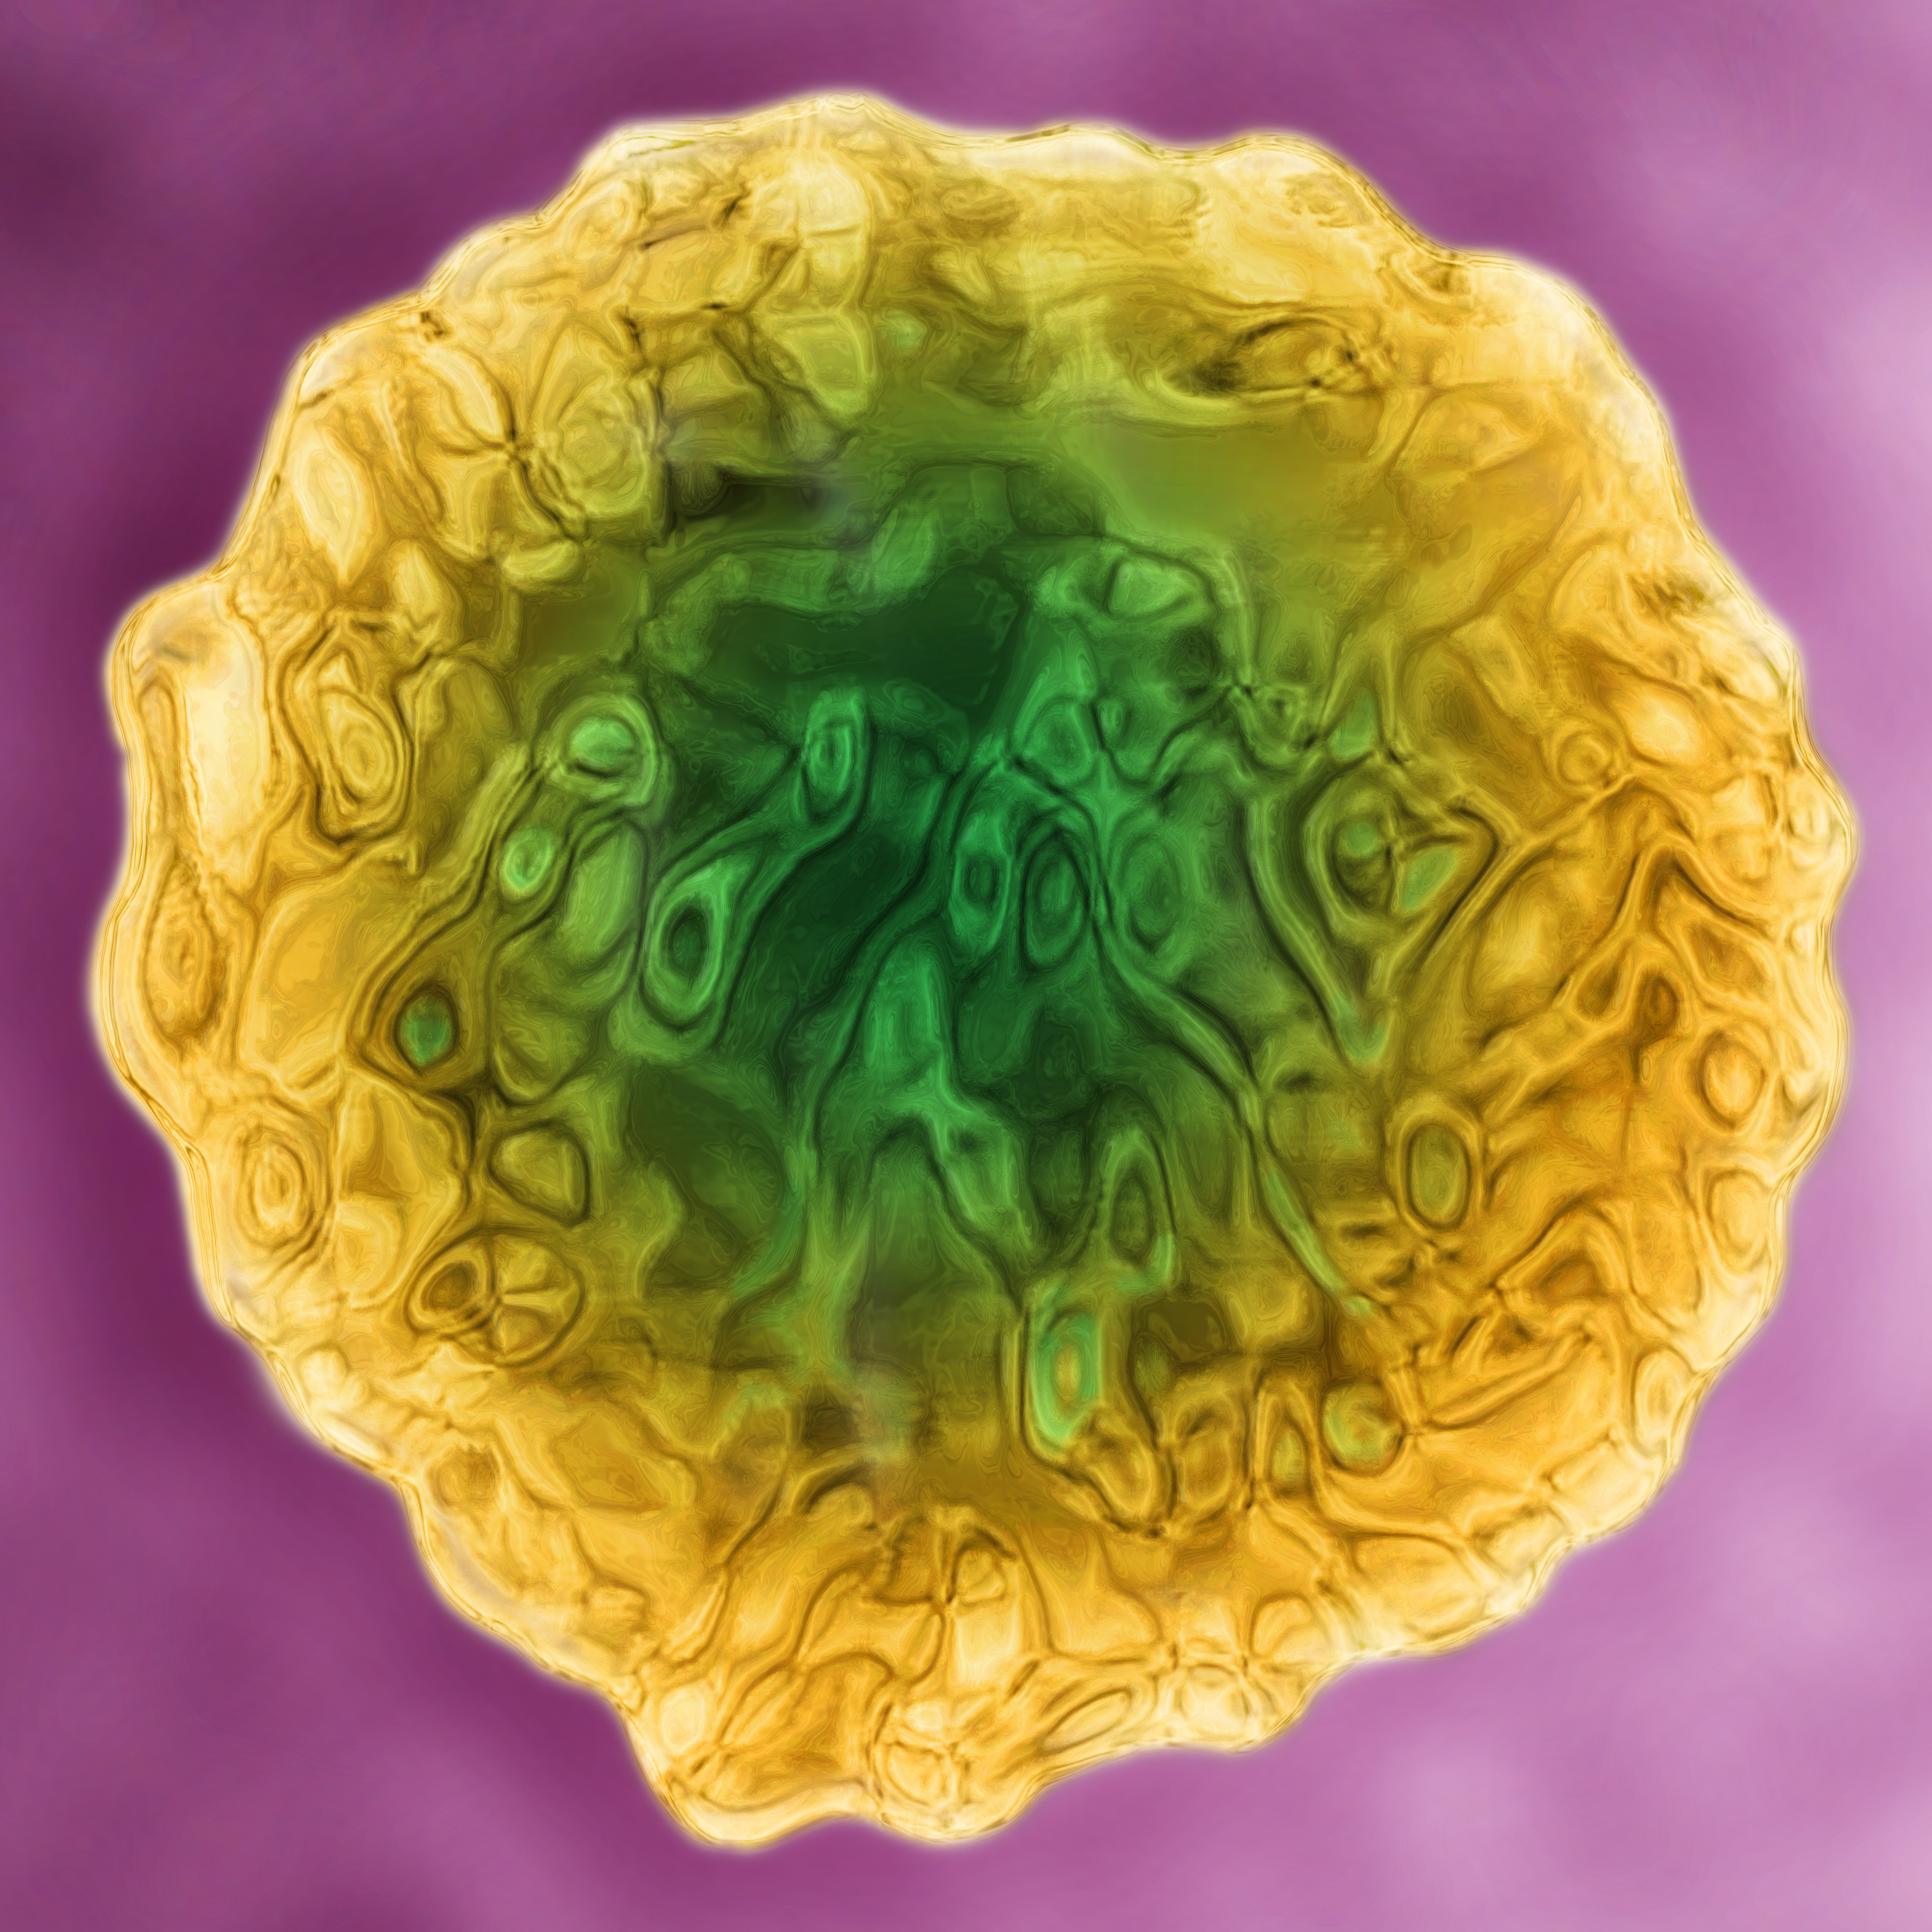 A colorized closeup of the hepatitis C virus.